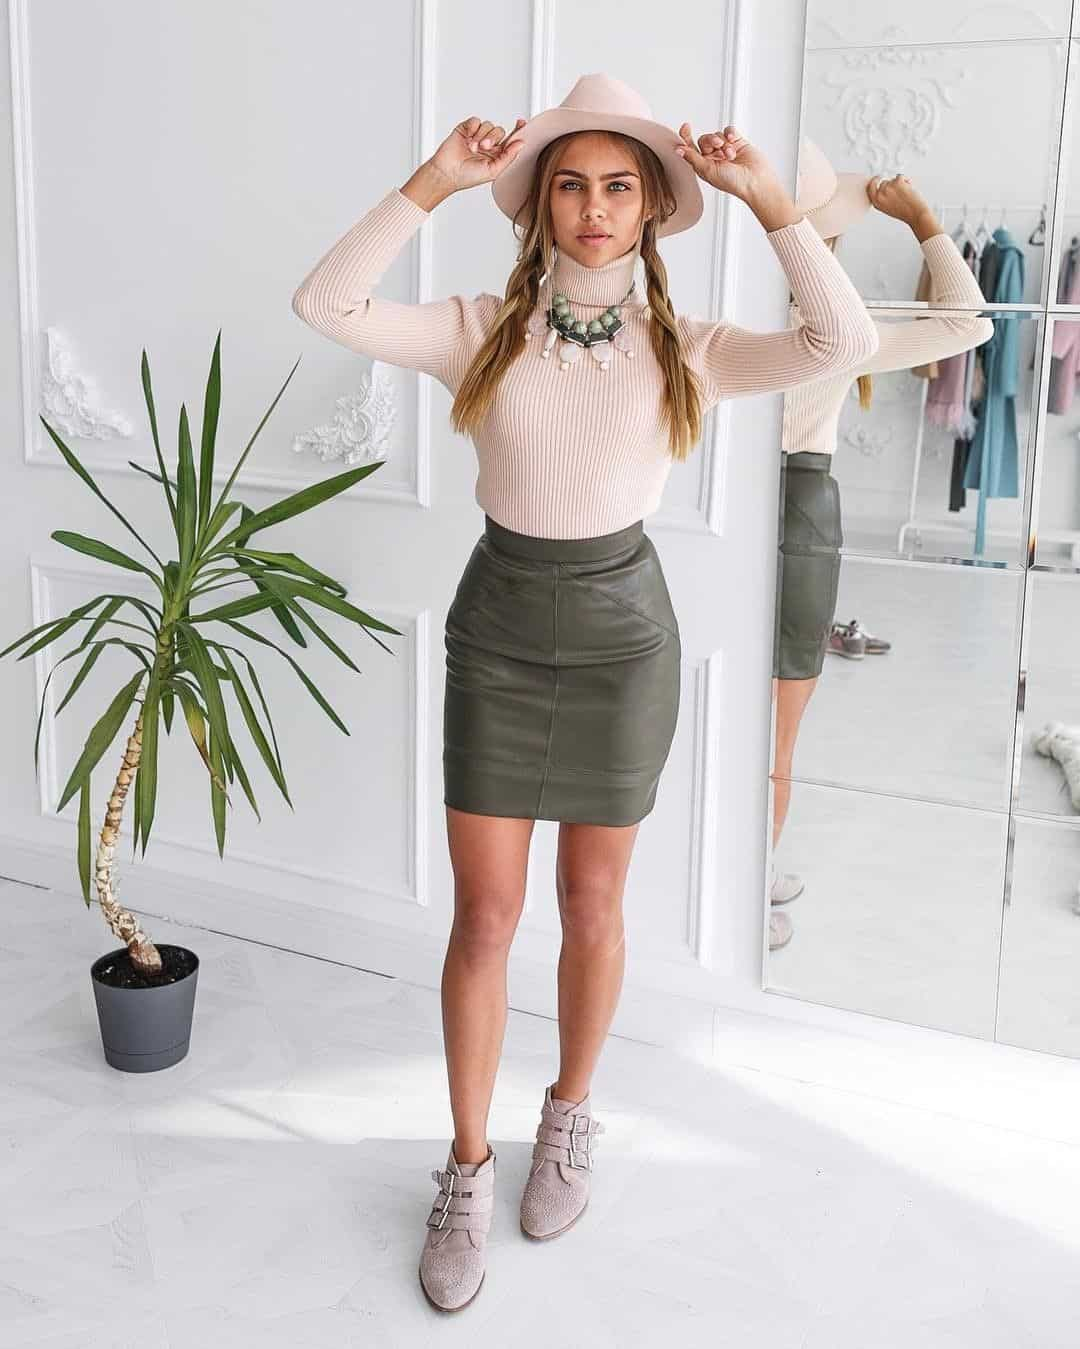 Top 11 Skirts 2022: Creative Approach to Women Skirts in 2022 (55 photos)